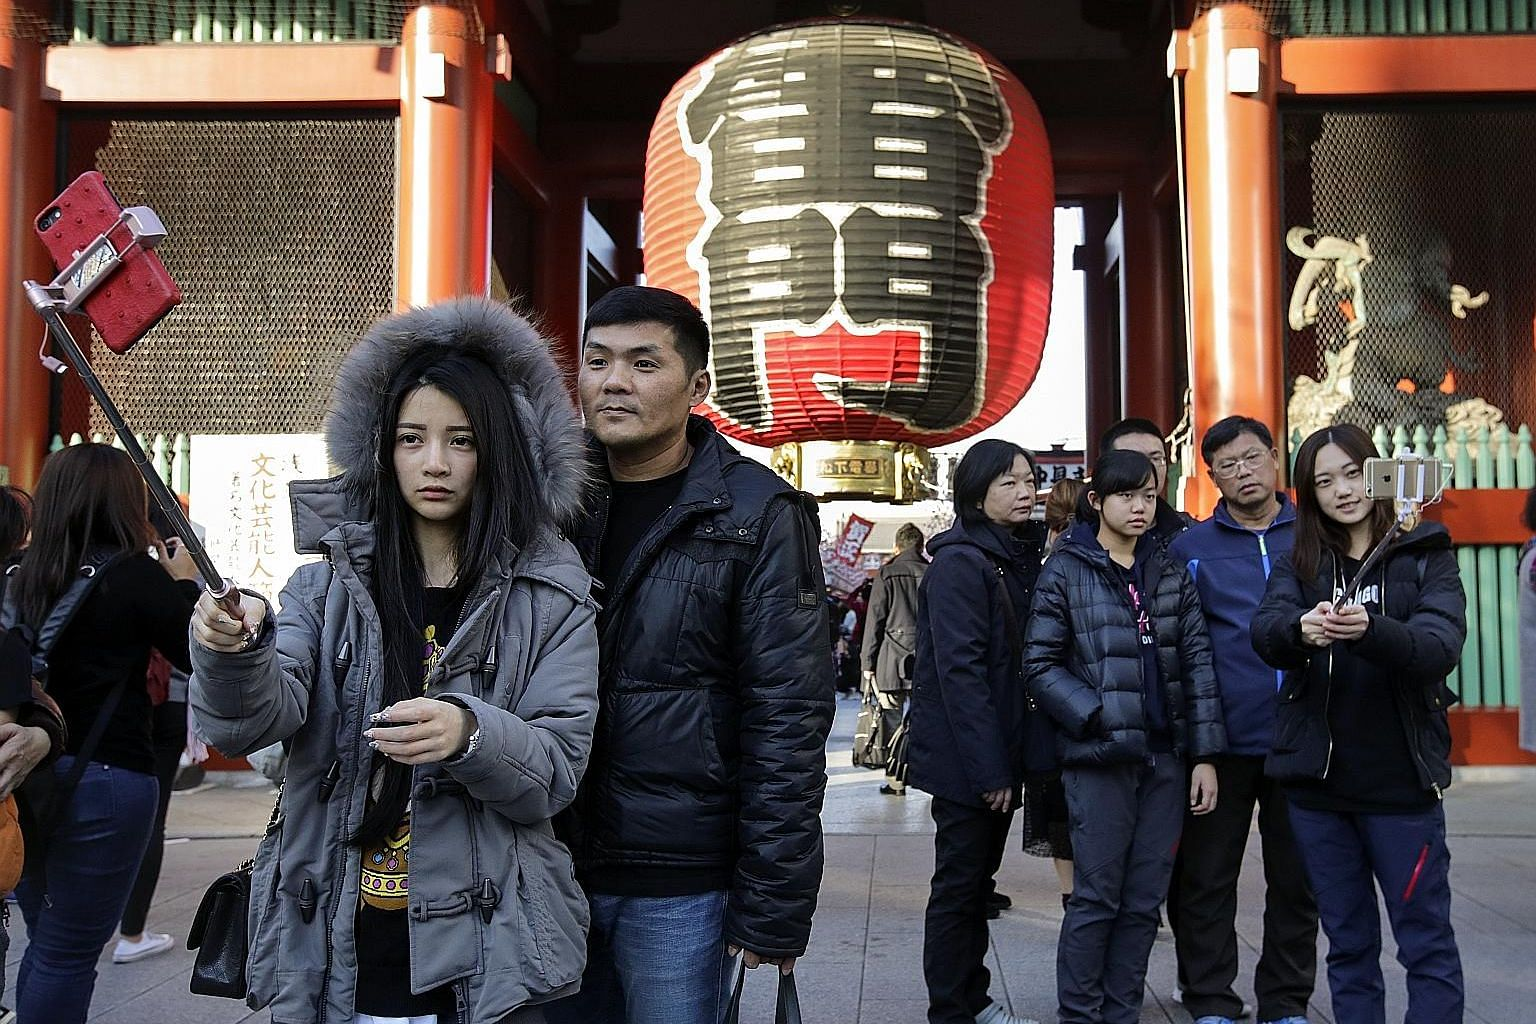 Tourists from China taking wefies in front of a huge paper lantern at the Kaminarimon Gate of Sensoji temple in Asakusa, Tokyo. Chinese nationals made 8.4 million trips to Japan last year, up 13.9 per cent from 2017, according to the Japan National T